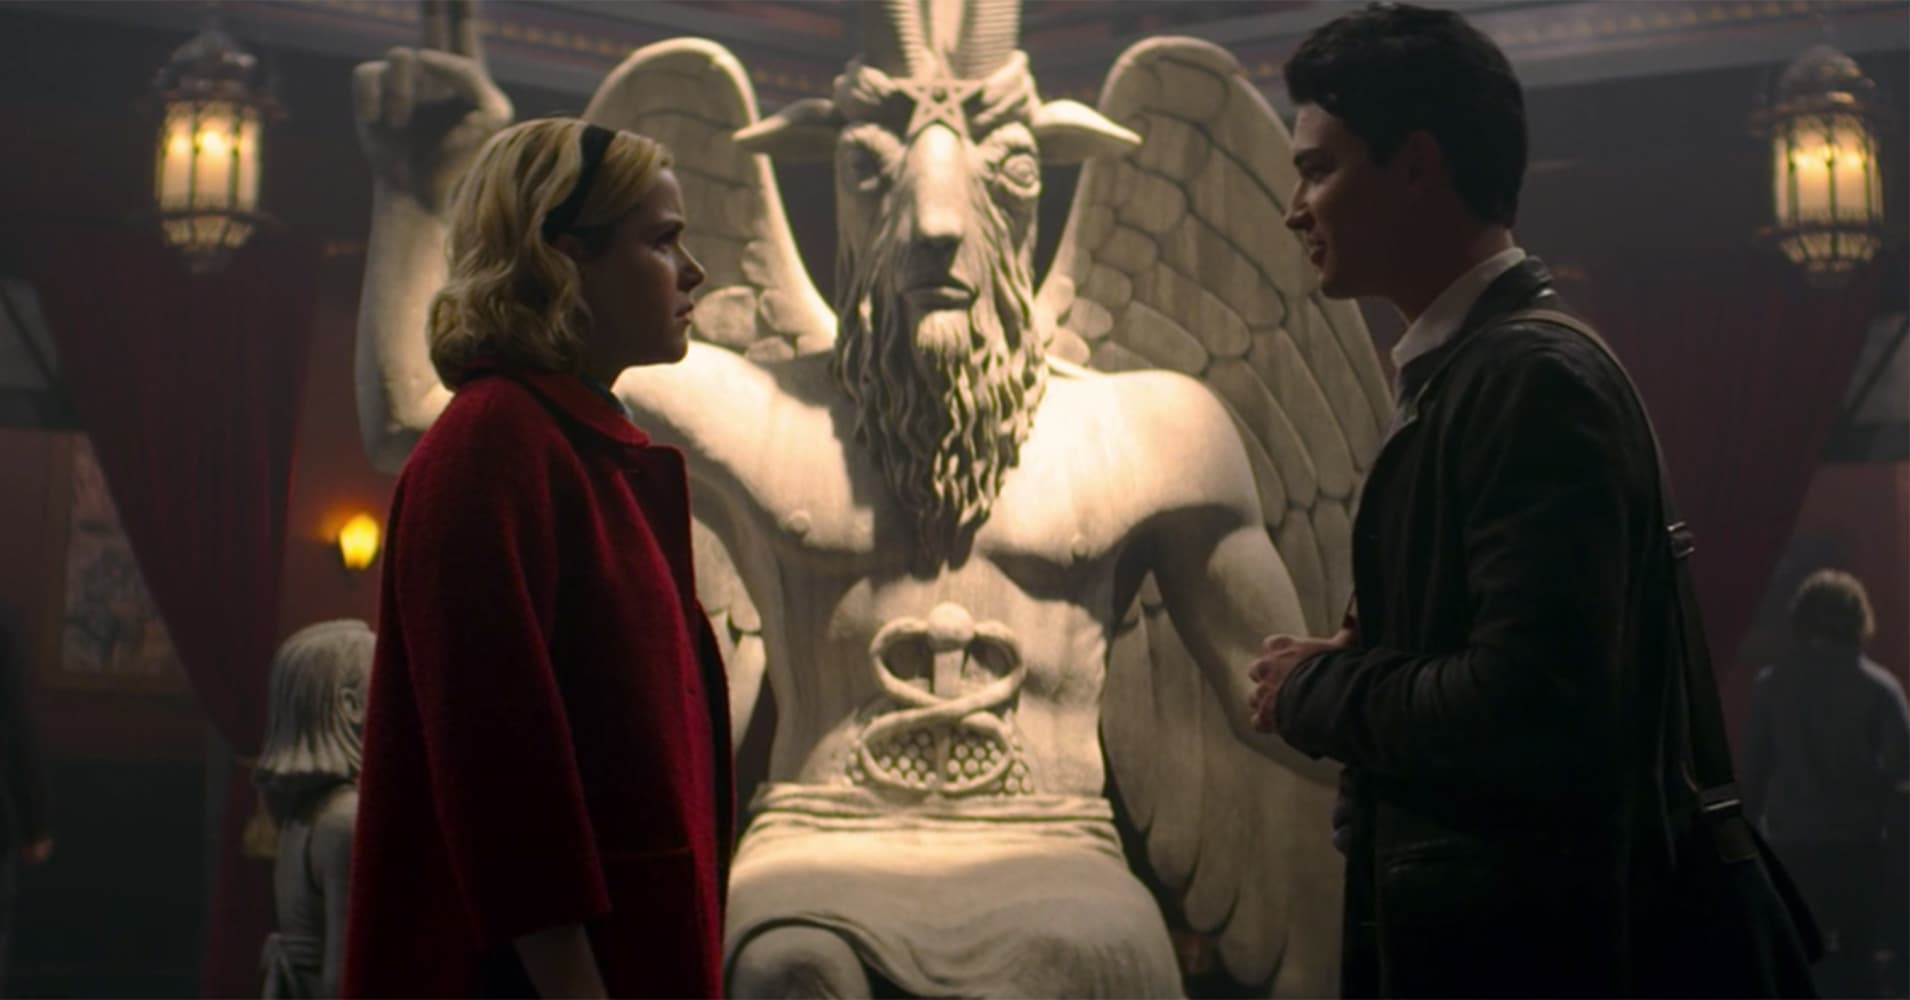 Satanic Temple sues Netflix for $150 million for using statue of demon god in 'Sabrina'